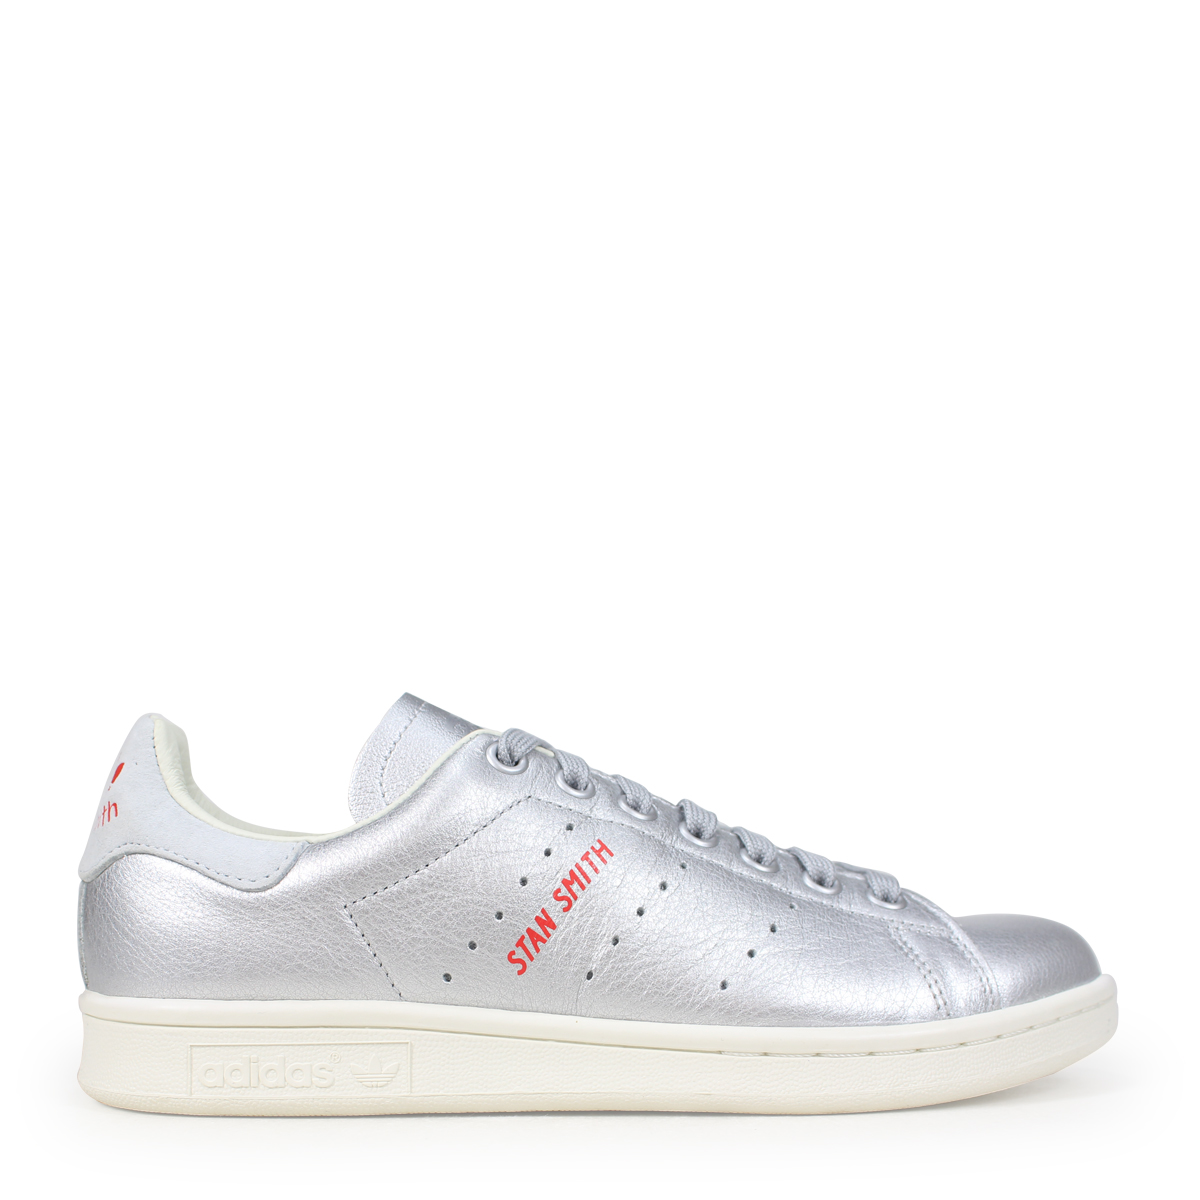 online store cab2e 3a3fd adidas Originals STAN SMITH W Adidas originals Stan Smith Ladys sneakers  B41750 silver load planned Shinnyu load in reservation product 620  containing ...